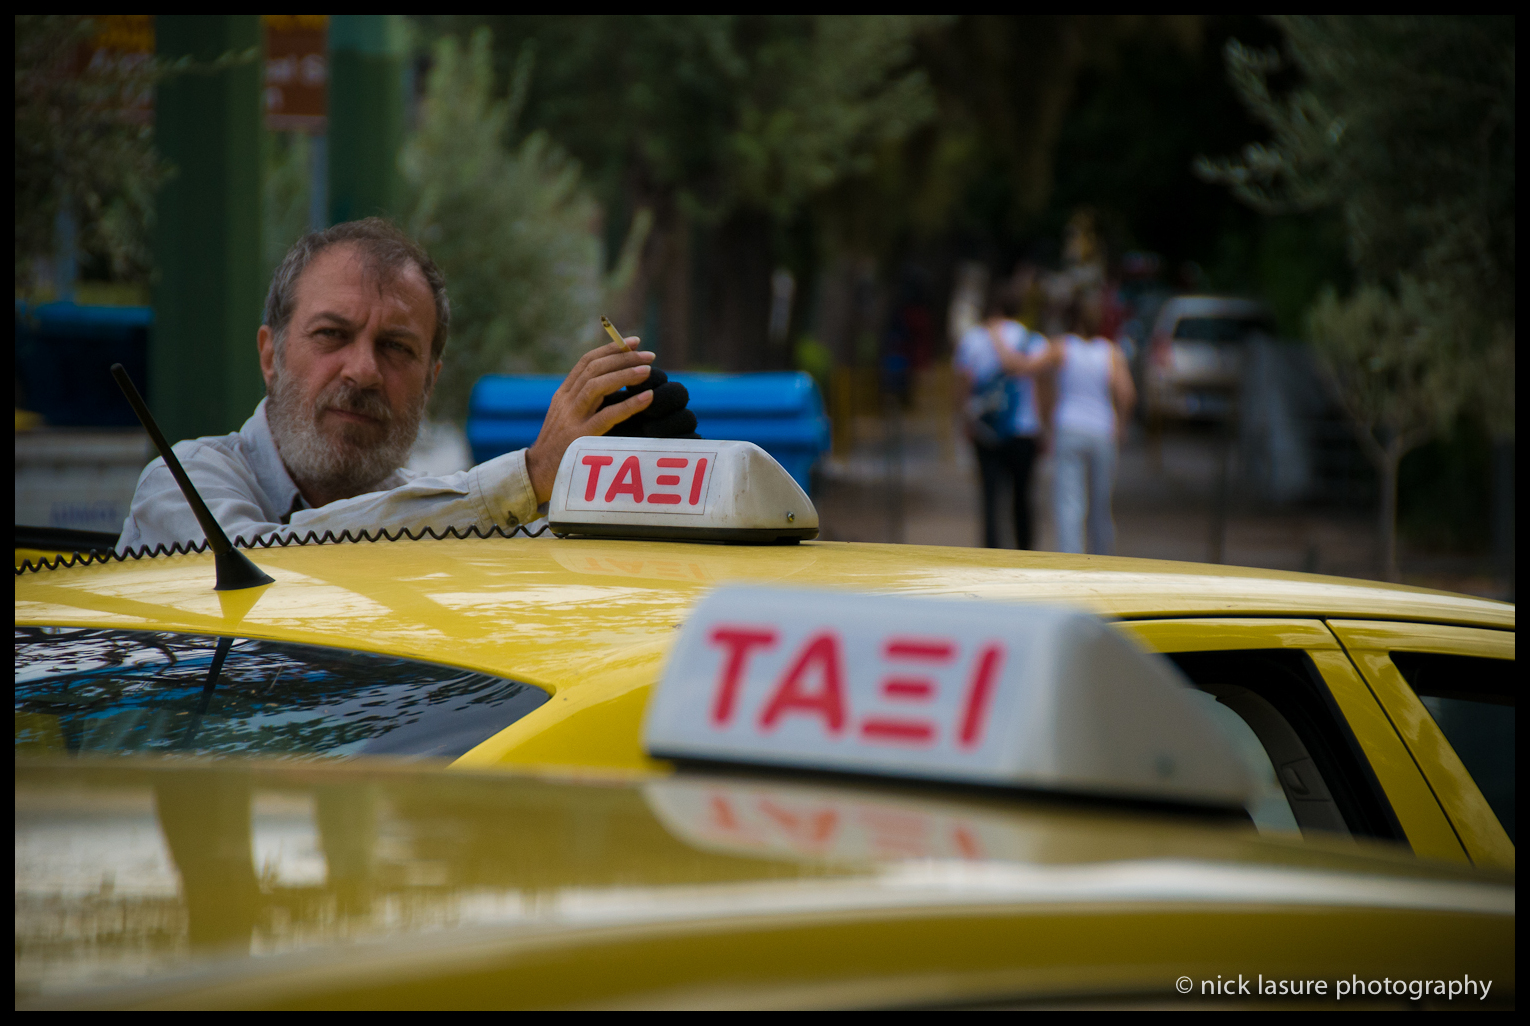 A lot of Greeks seemed pretty upbeat despite the hard times that still persist in the country, this taxi driver appeared to be enjoying a good contemplative cigarette.